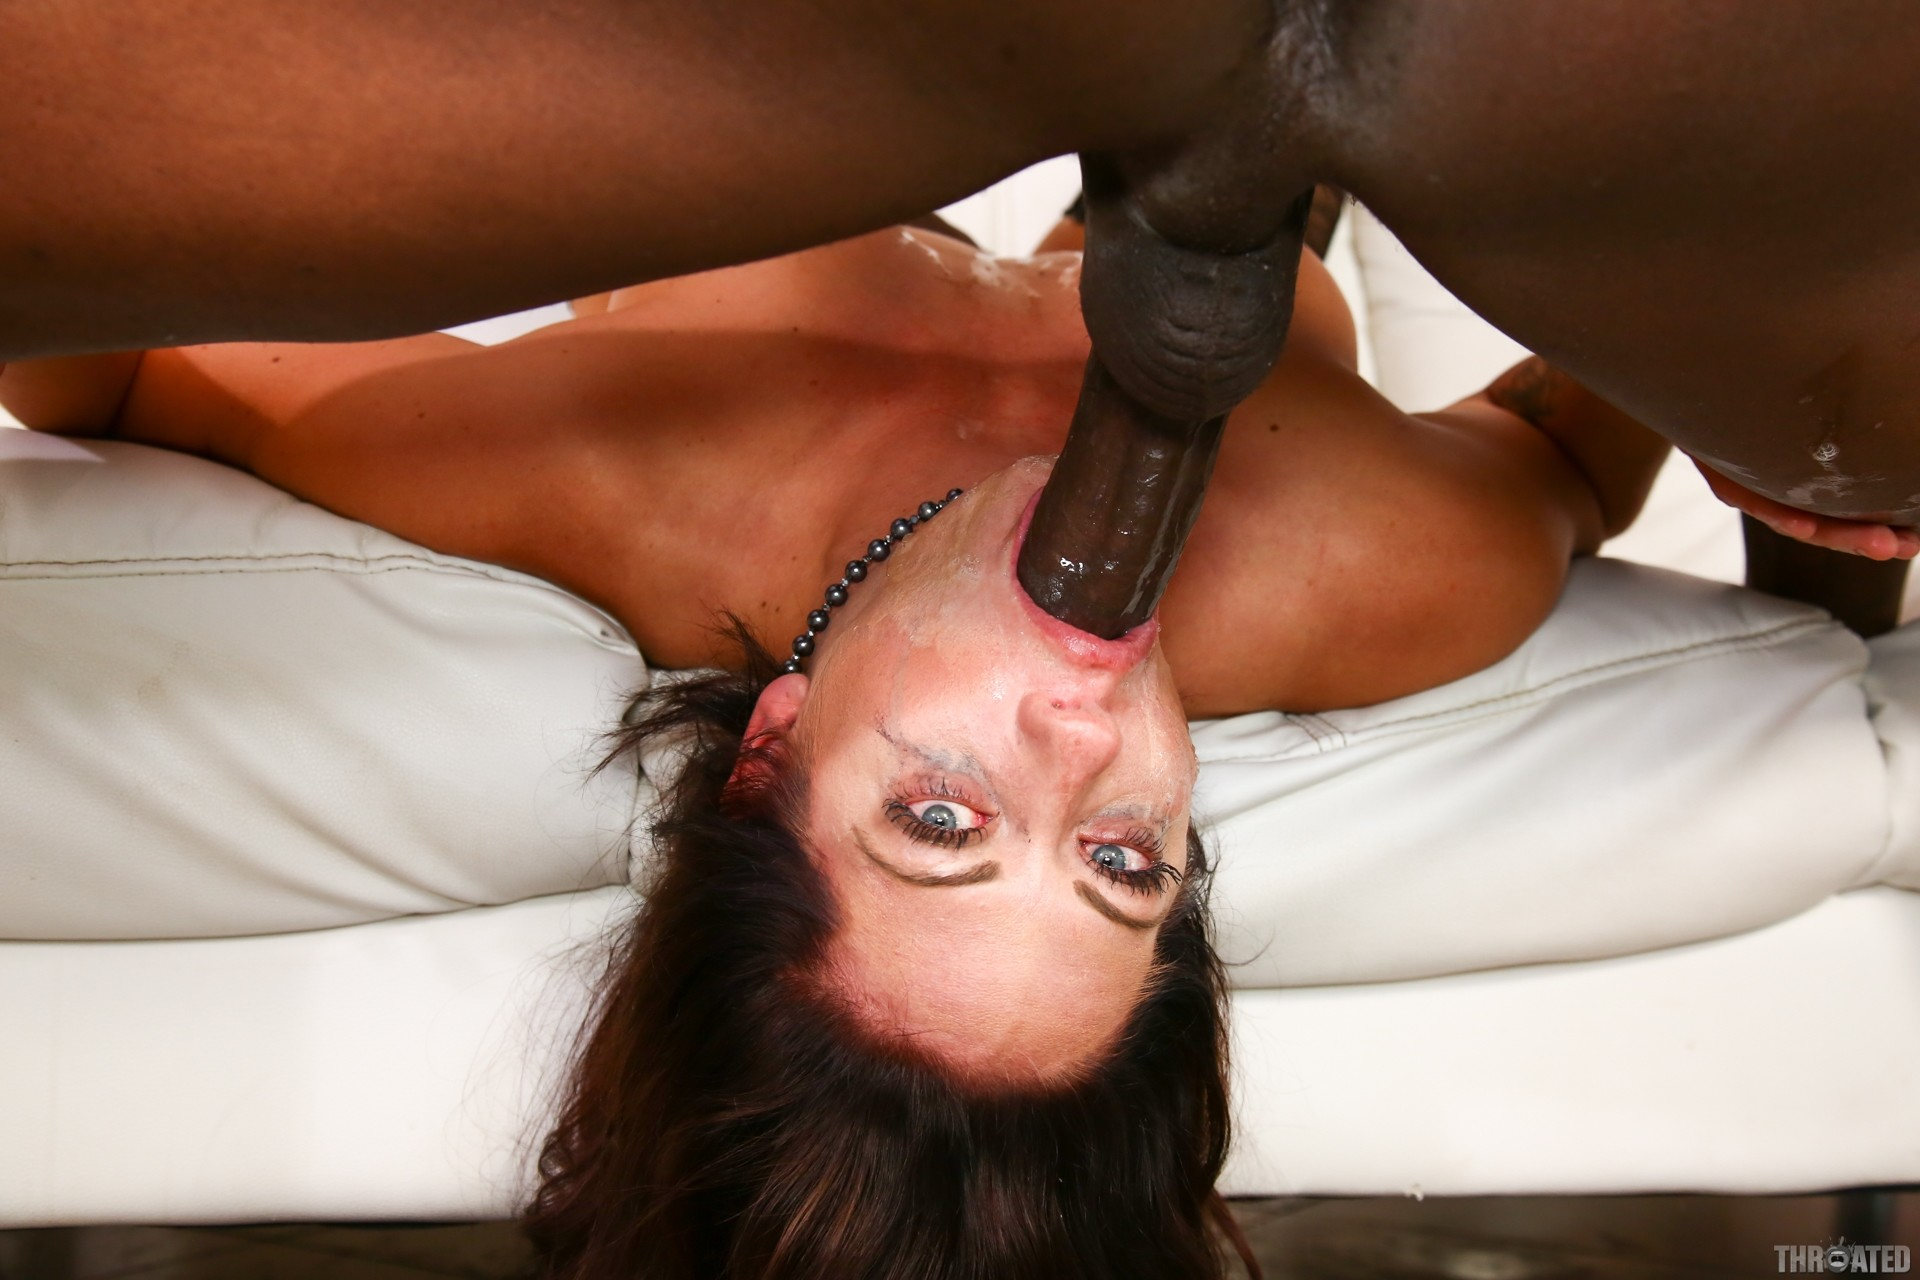 Romance girls gives long dick deep throat